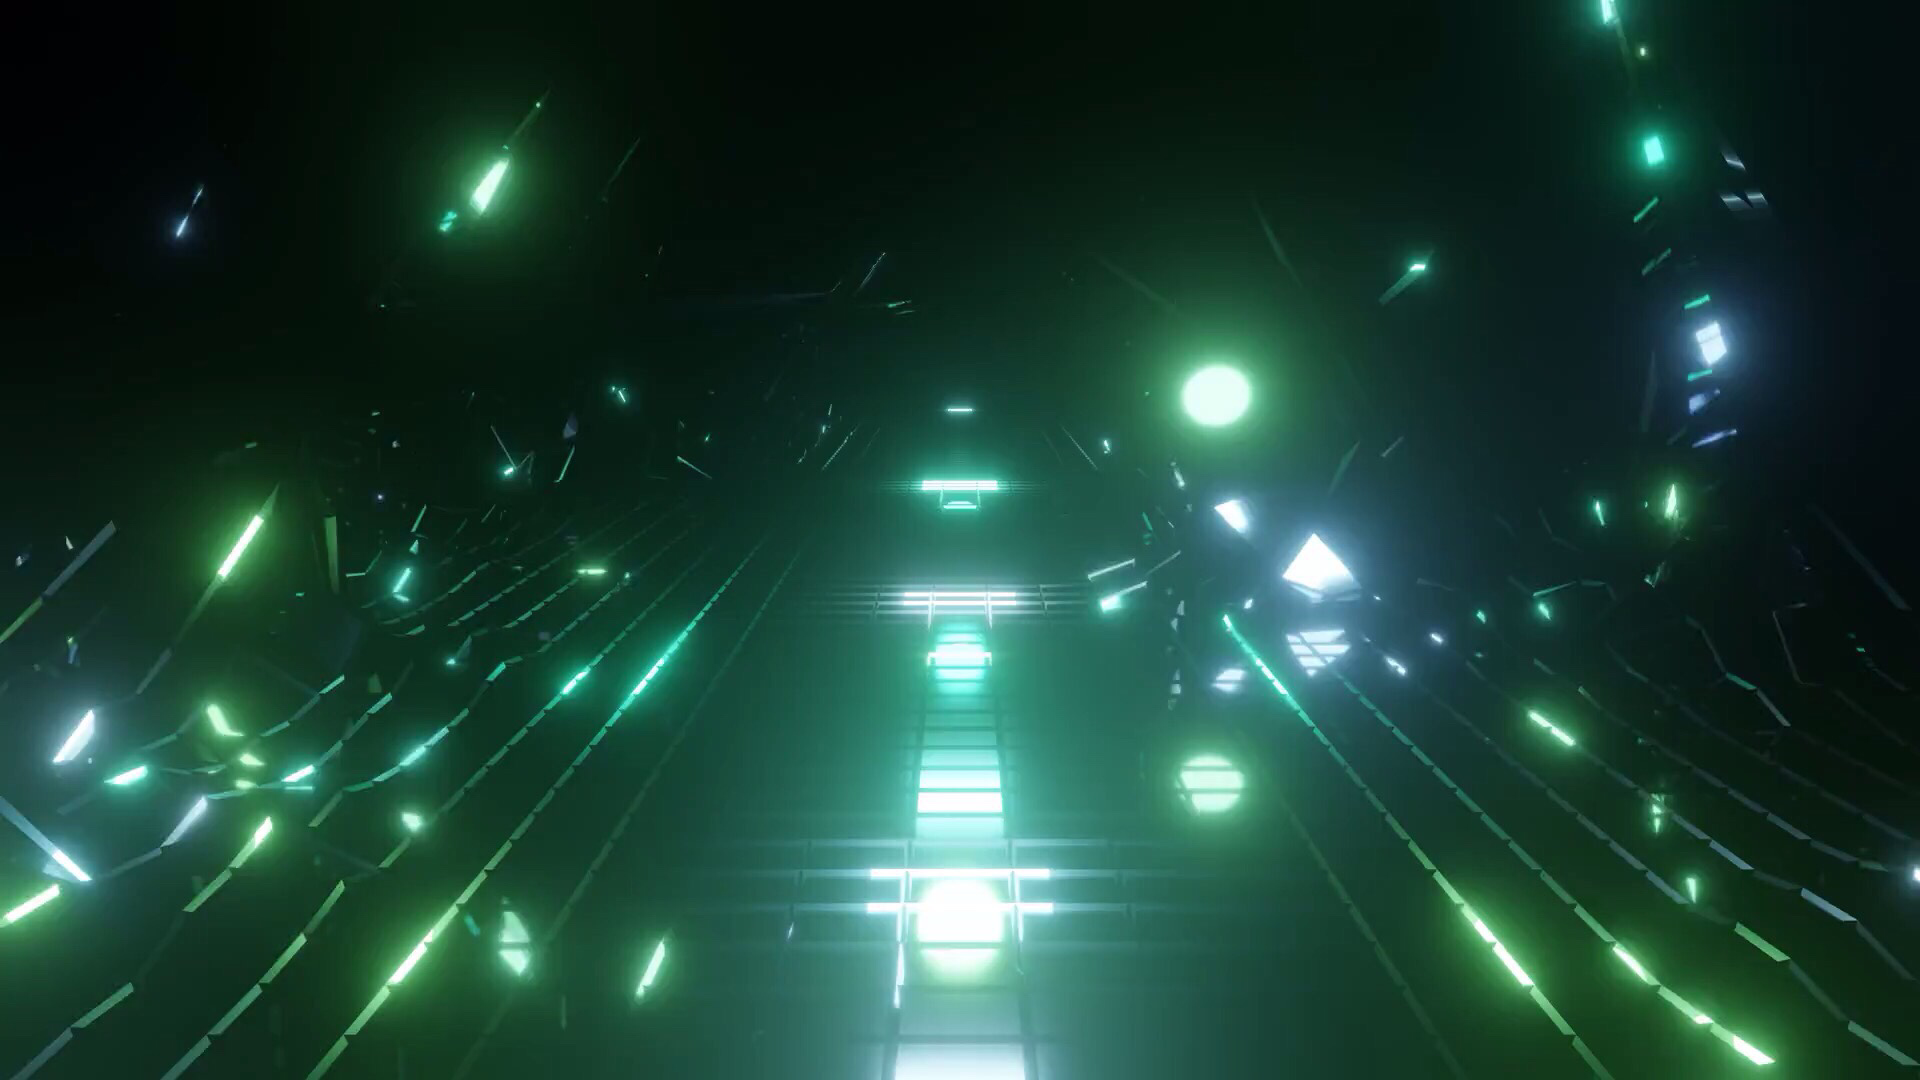 Free K Green Blinking Wireframe Reflections Wallpaper Free Video Background P Fps